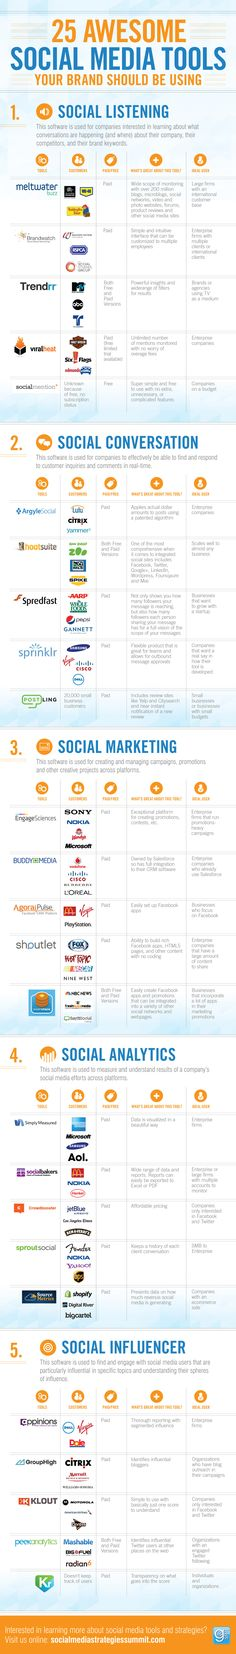 social-media-marketing-strategies-tools-2014.html#.Uu6Mm7IXKhU.facebook